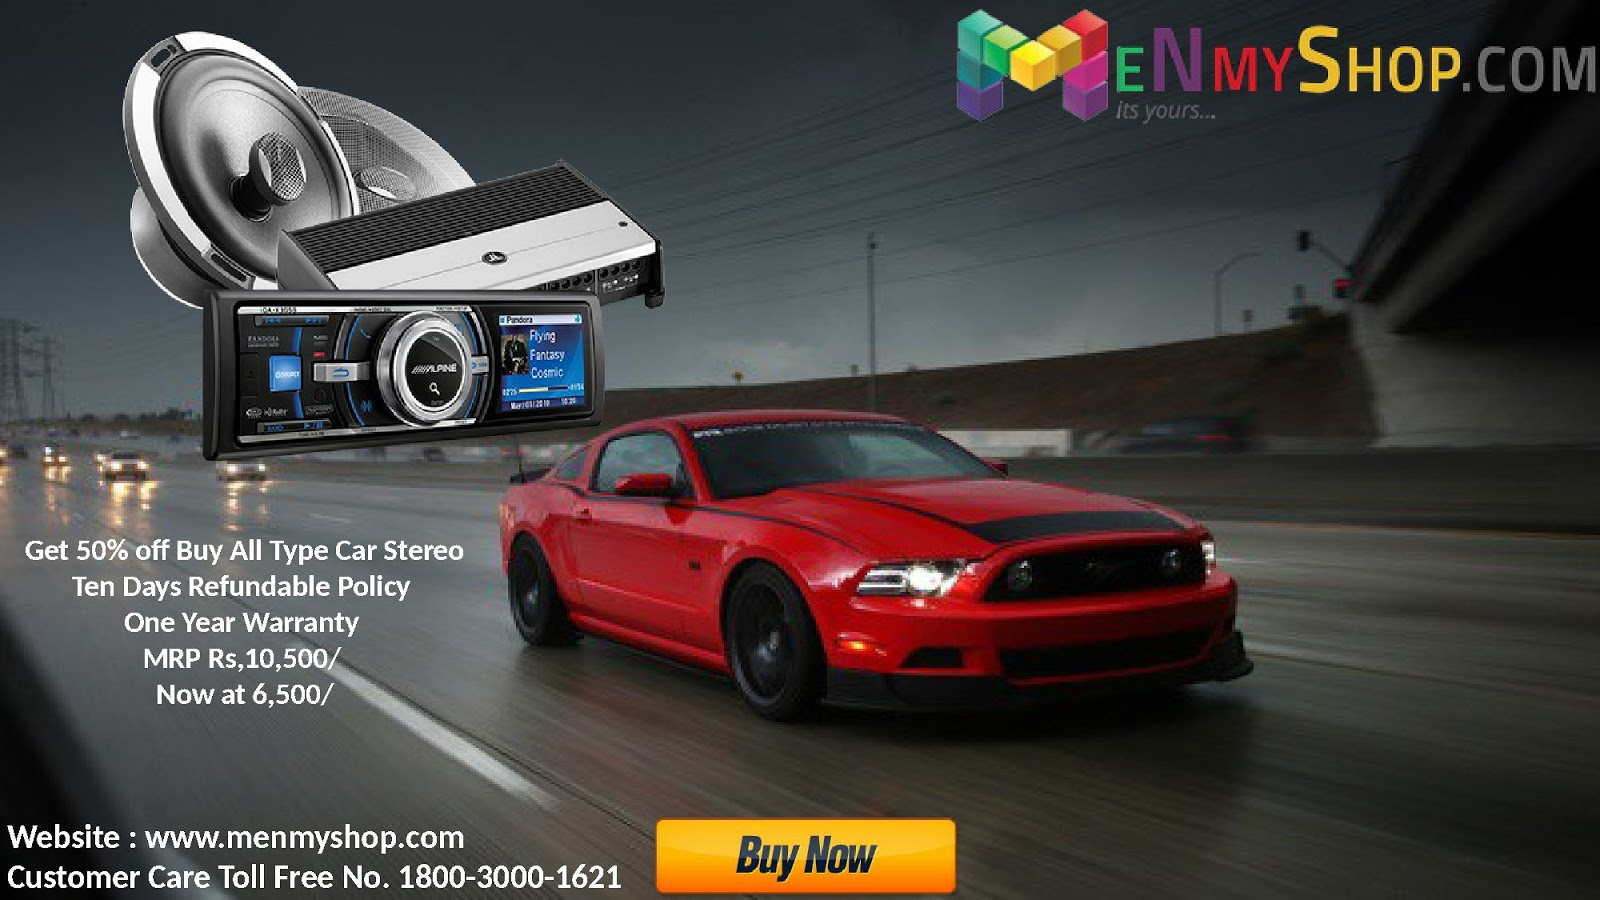 Buy Car Accessories Online Shop at 50% Discounted Price